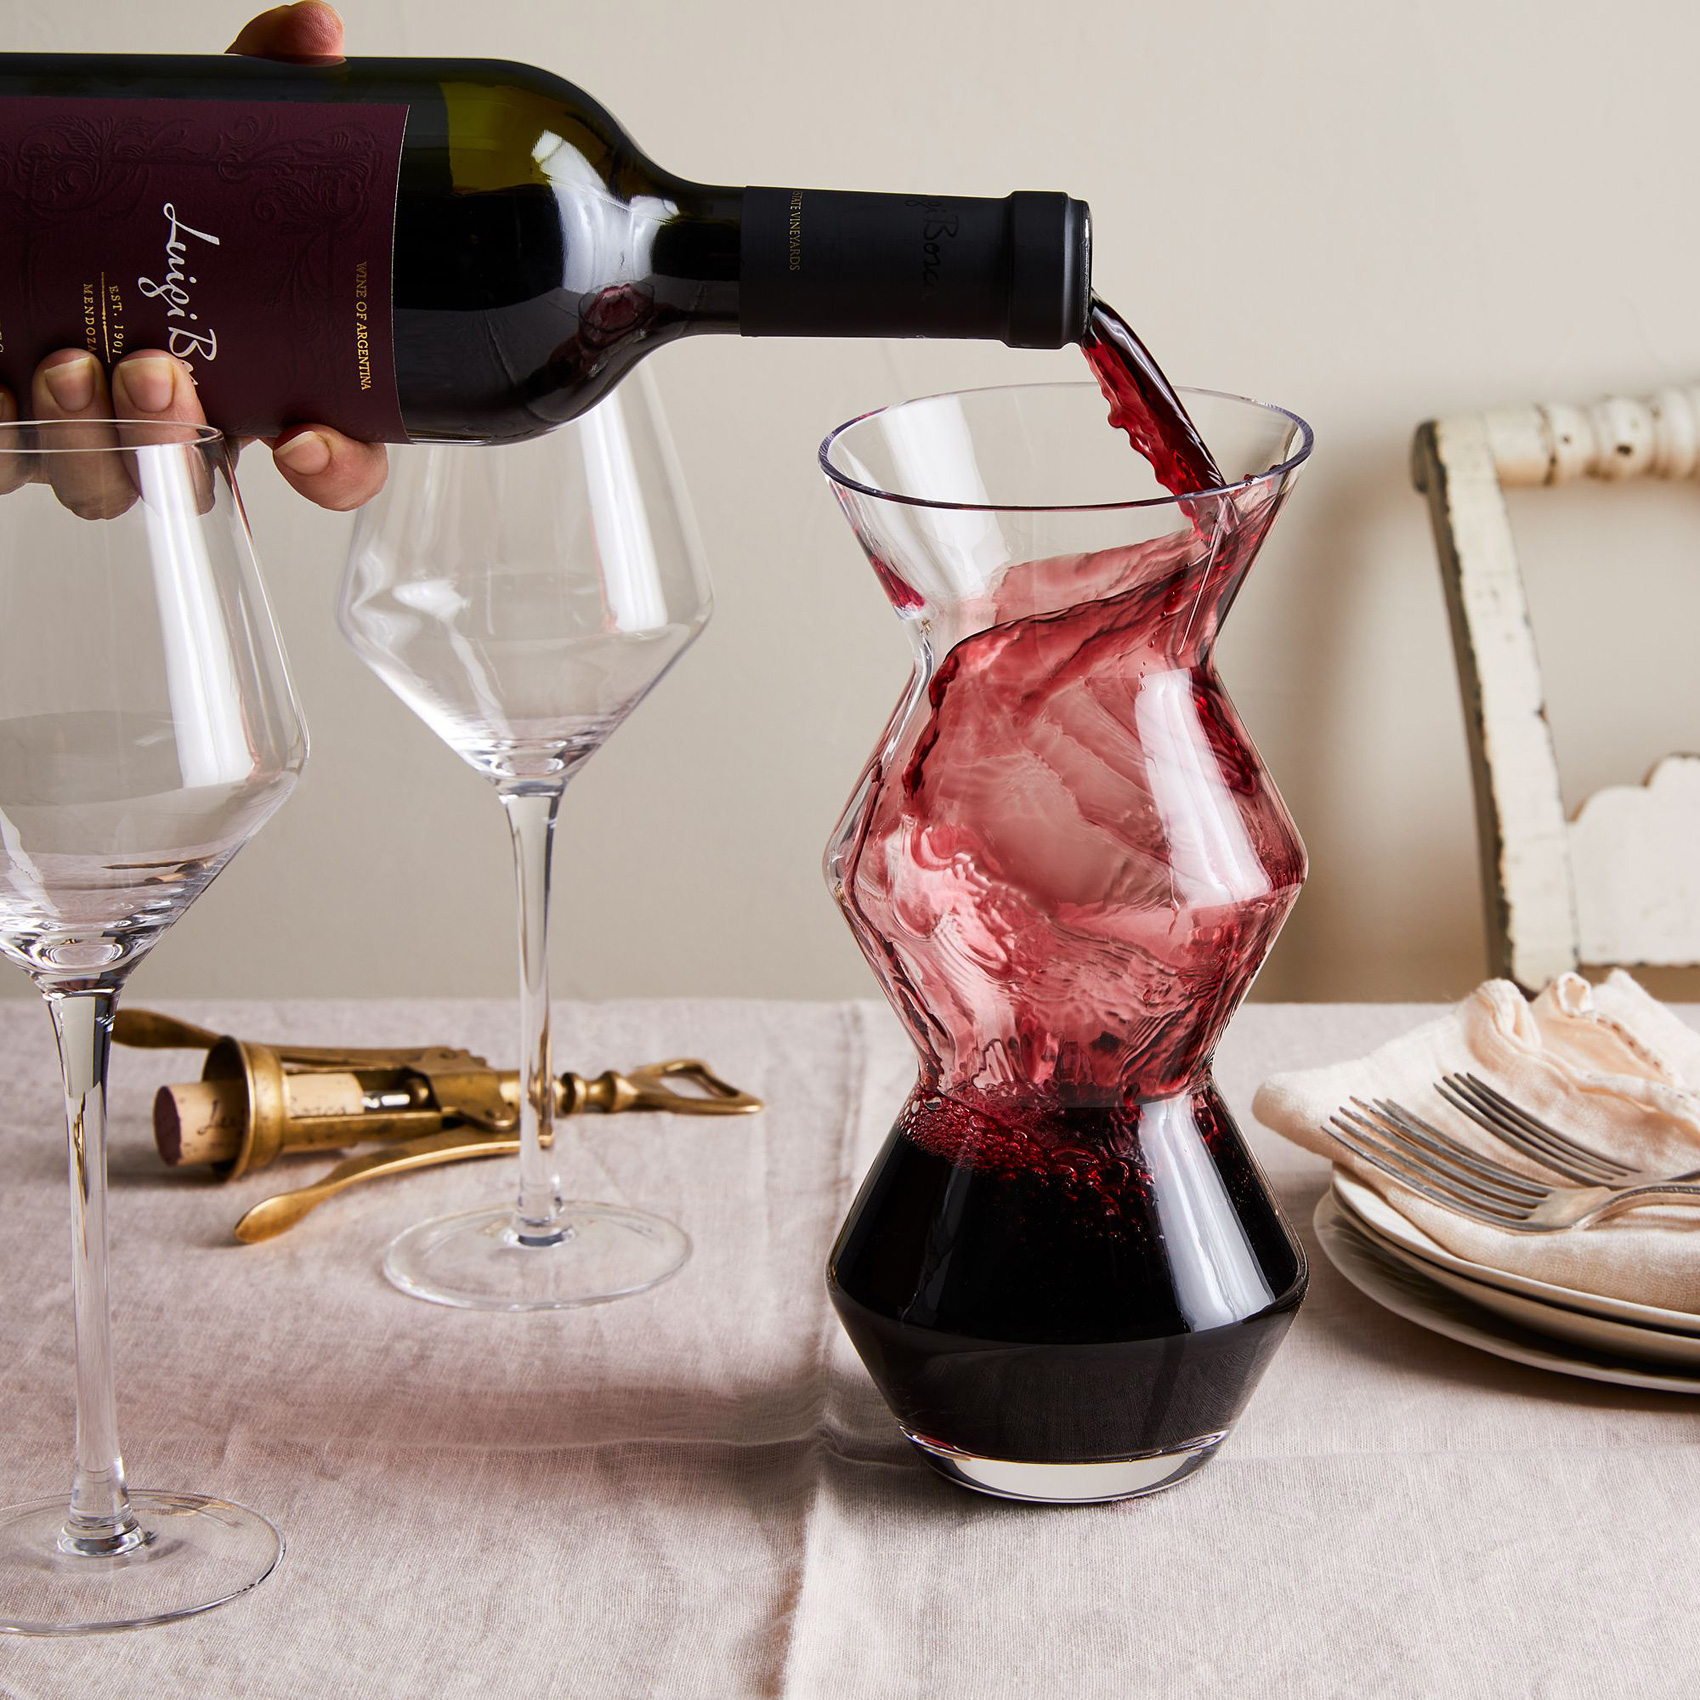 magisso_glass-aerator-carafe_drink_ty-mecham_food52